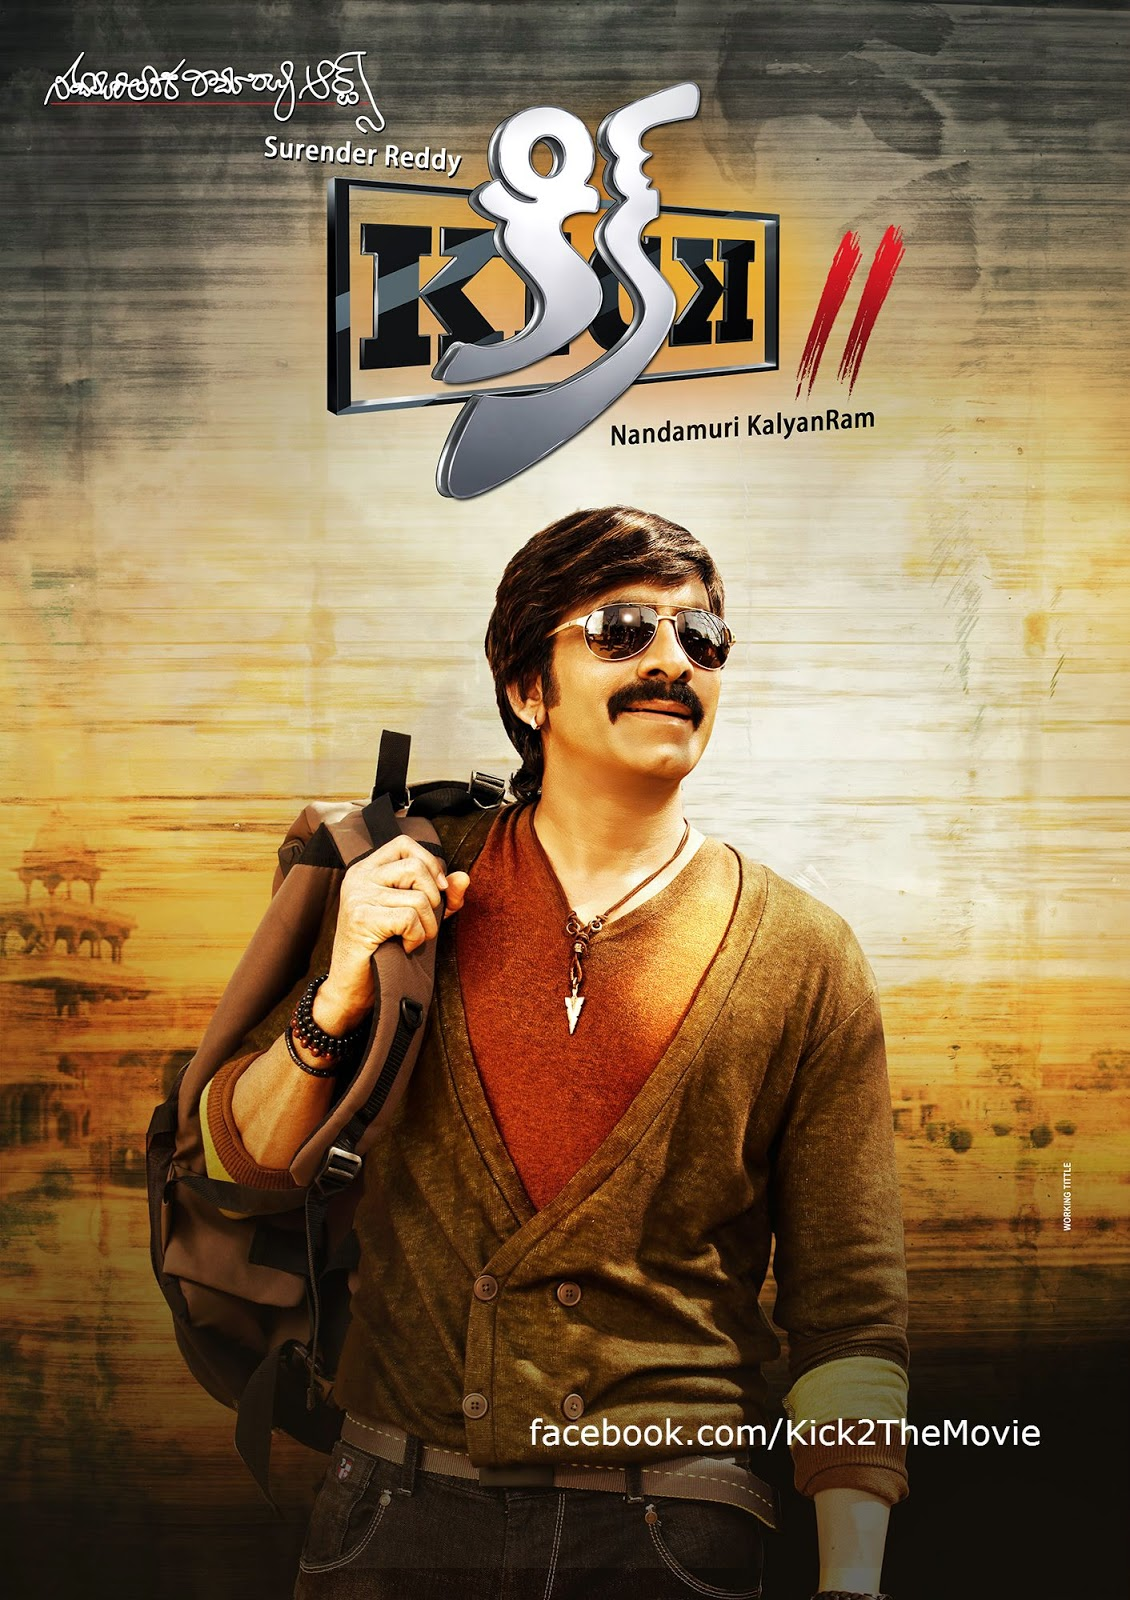 ravi teja hd pics in kick 2